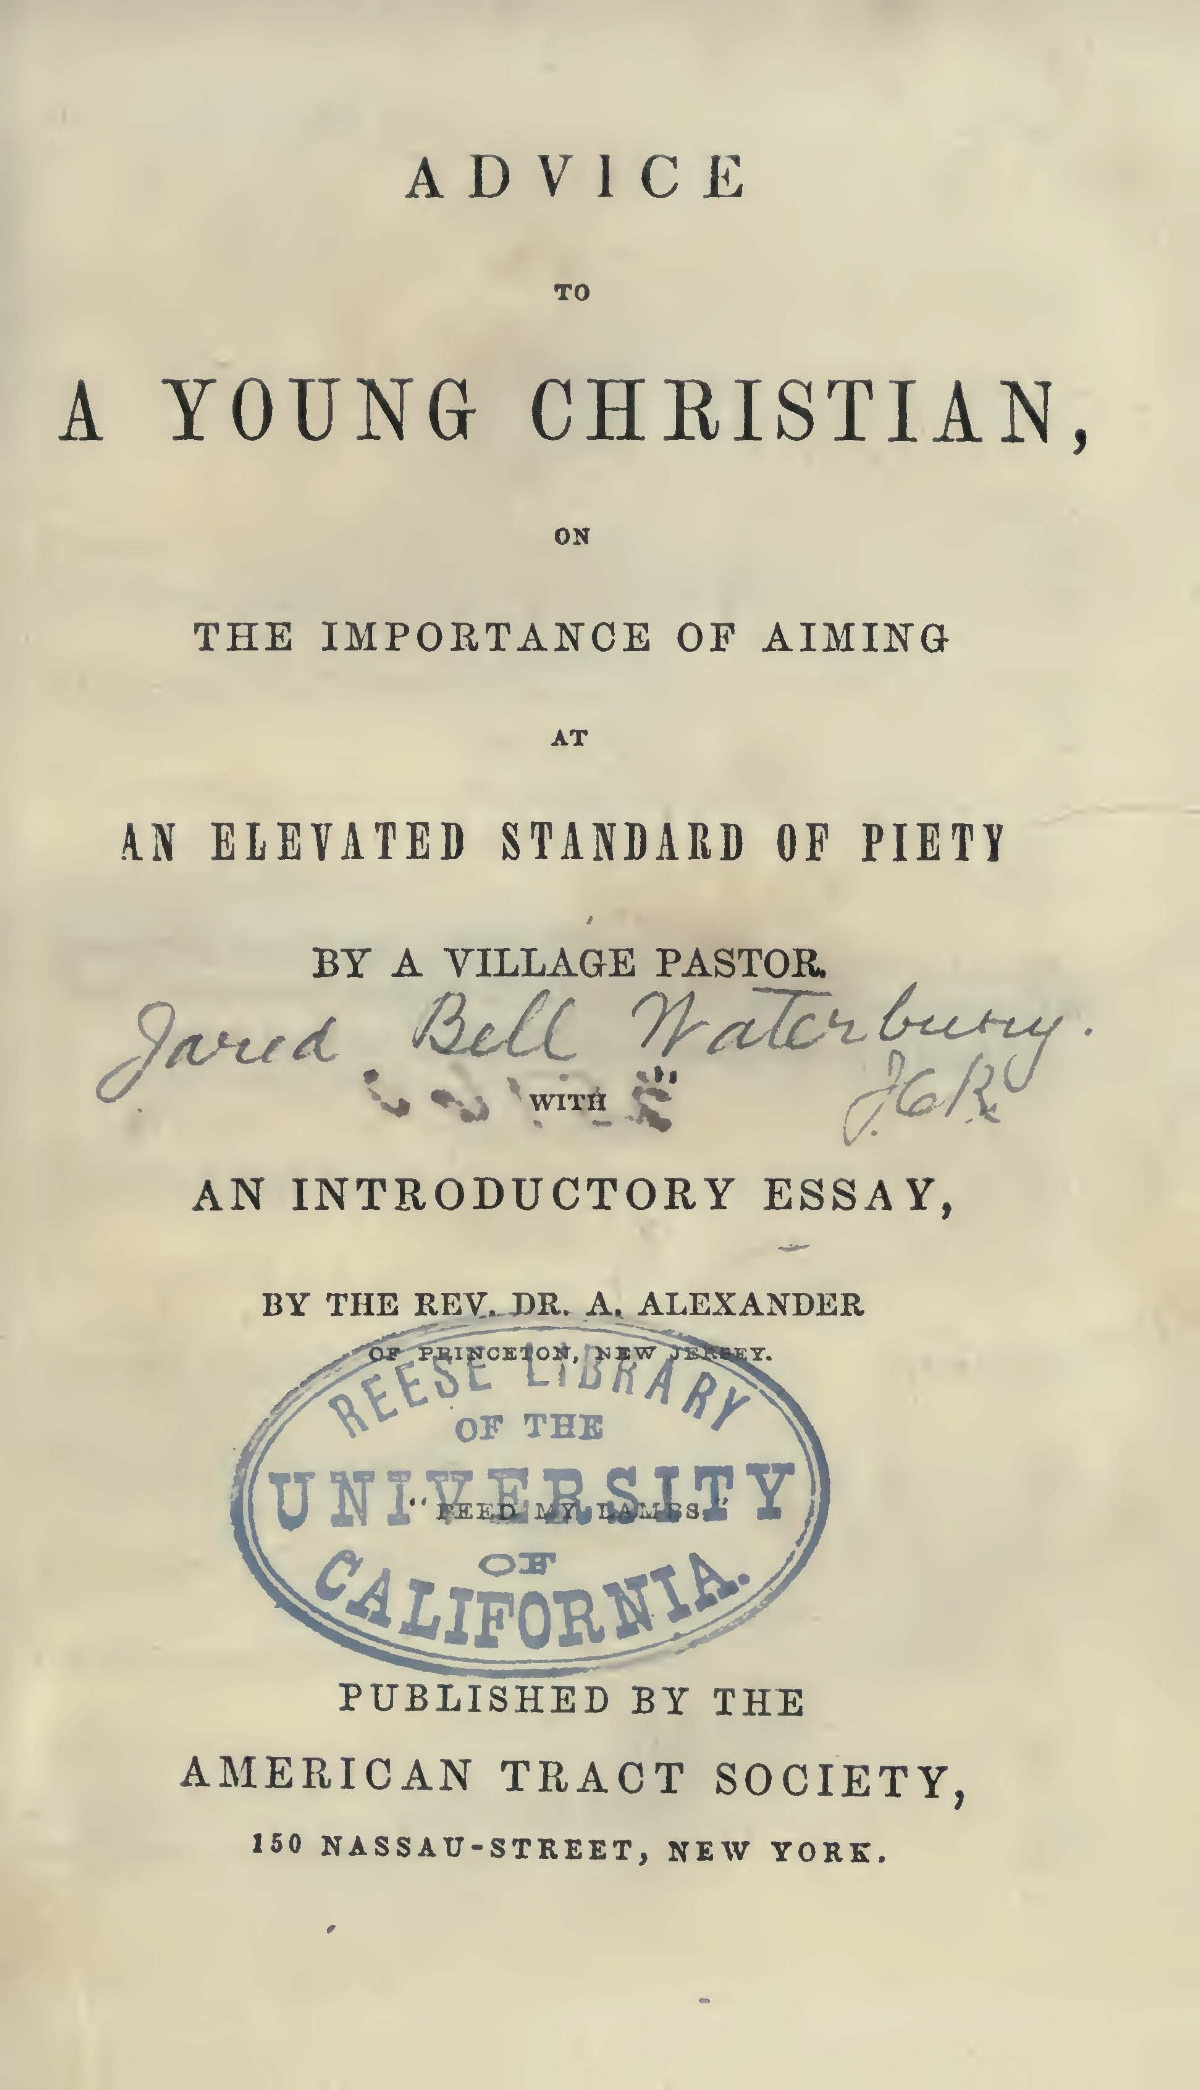 Alexander, Archibald, Introductory Essay on the Nature of Vital Piety Title Page.jpg